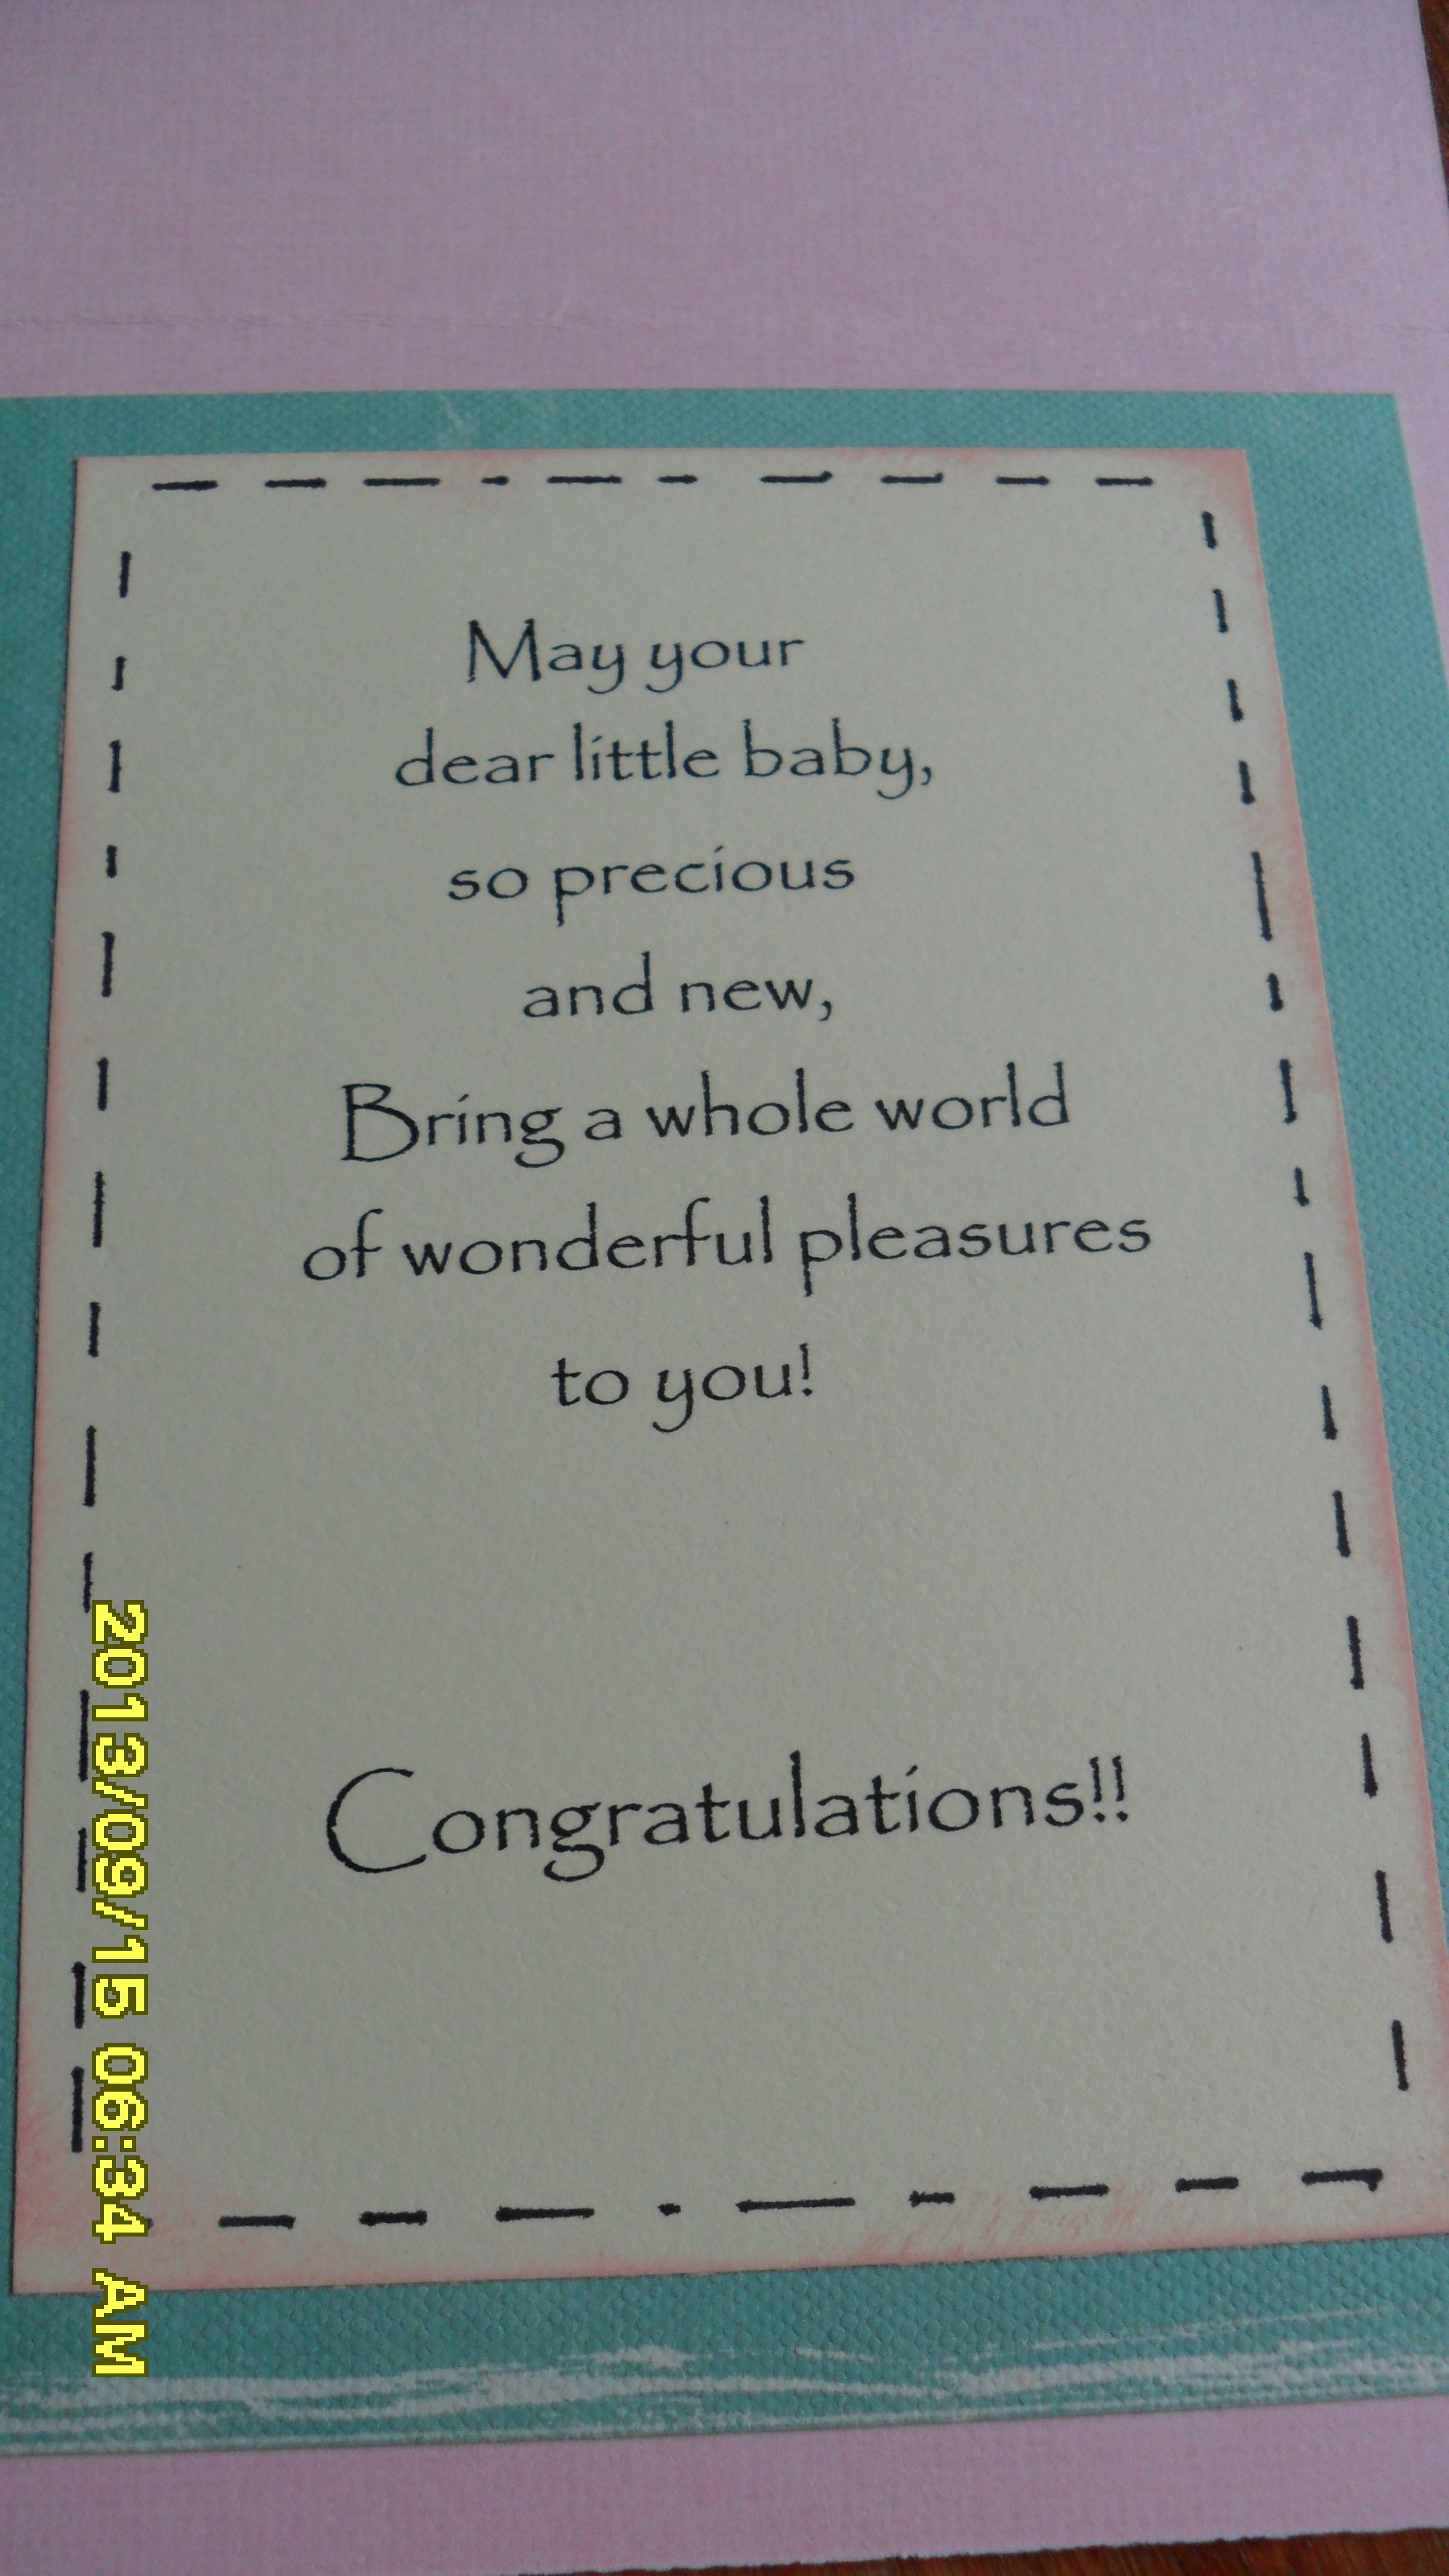 What To Write In A Baby Shower Card From Grandparents : write, shower, grandparents, Rosemary, Vivian, Cards, Shower, Sayings,